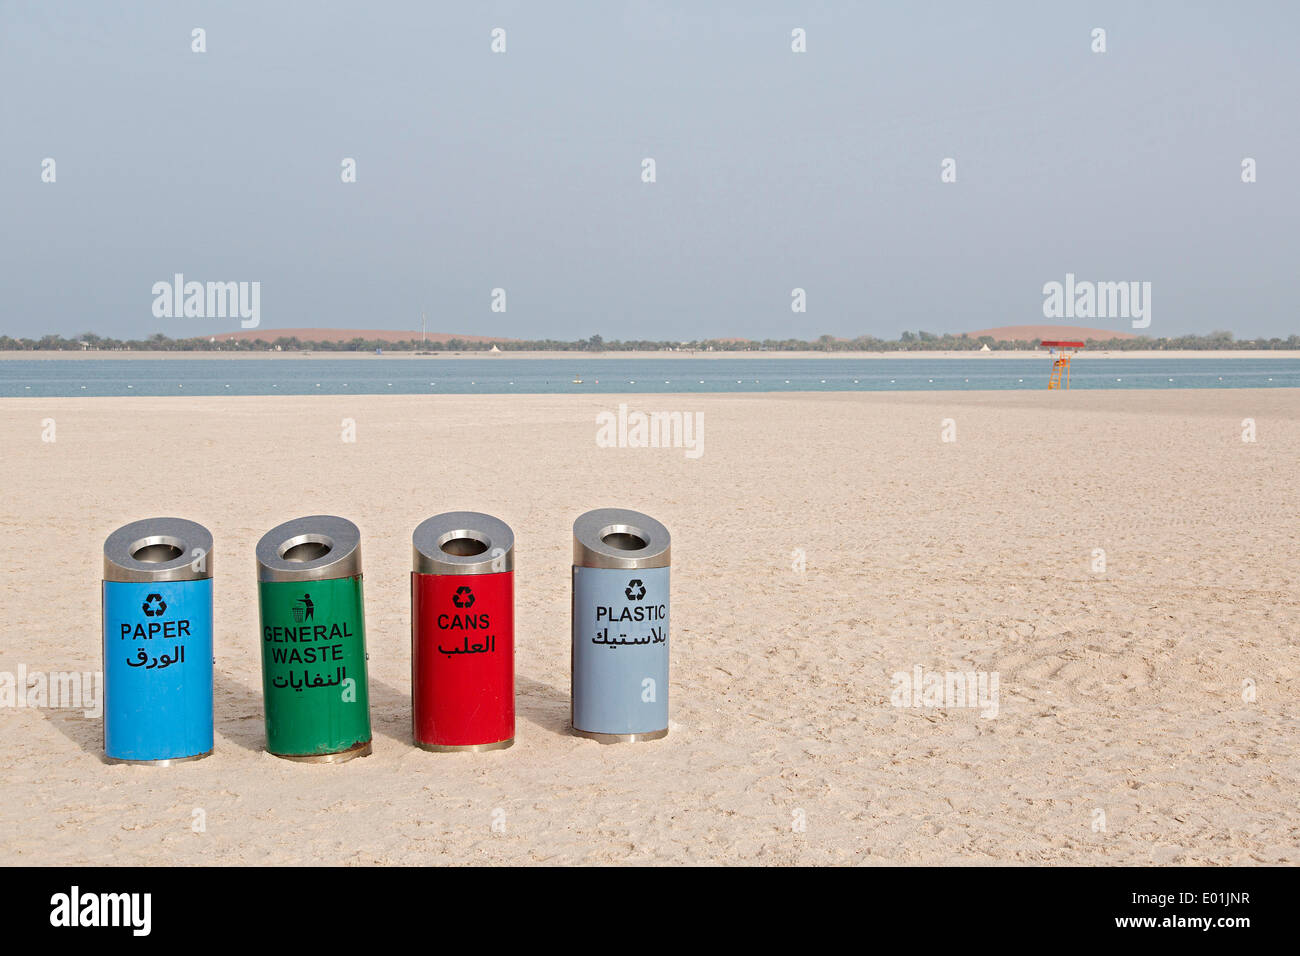 Rubbish bins for sorting waste on the beach at Corniche Road, Abu Dhabi, United Arab Emirates - Stock Image